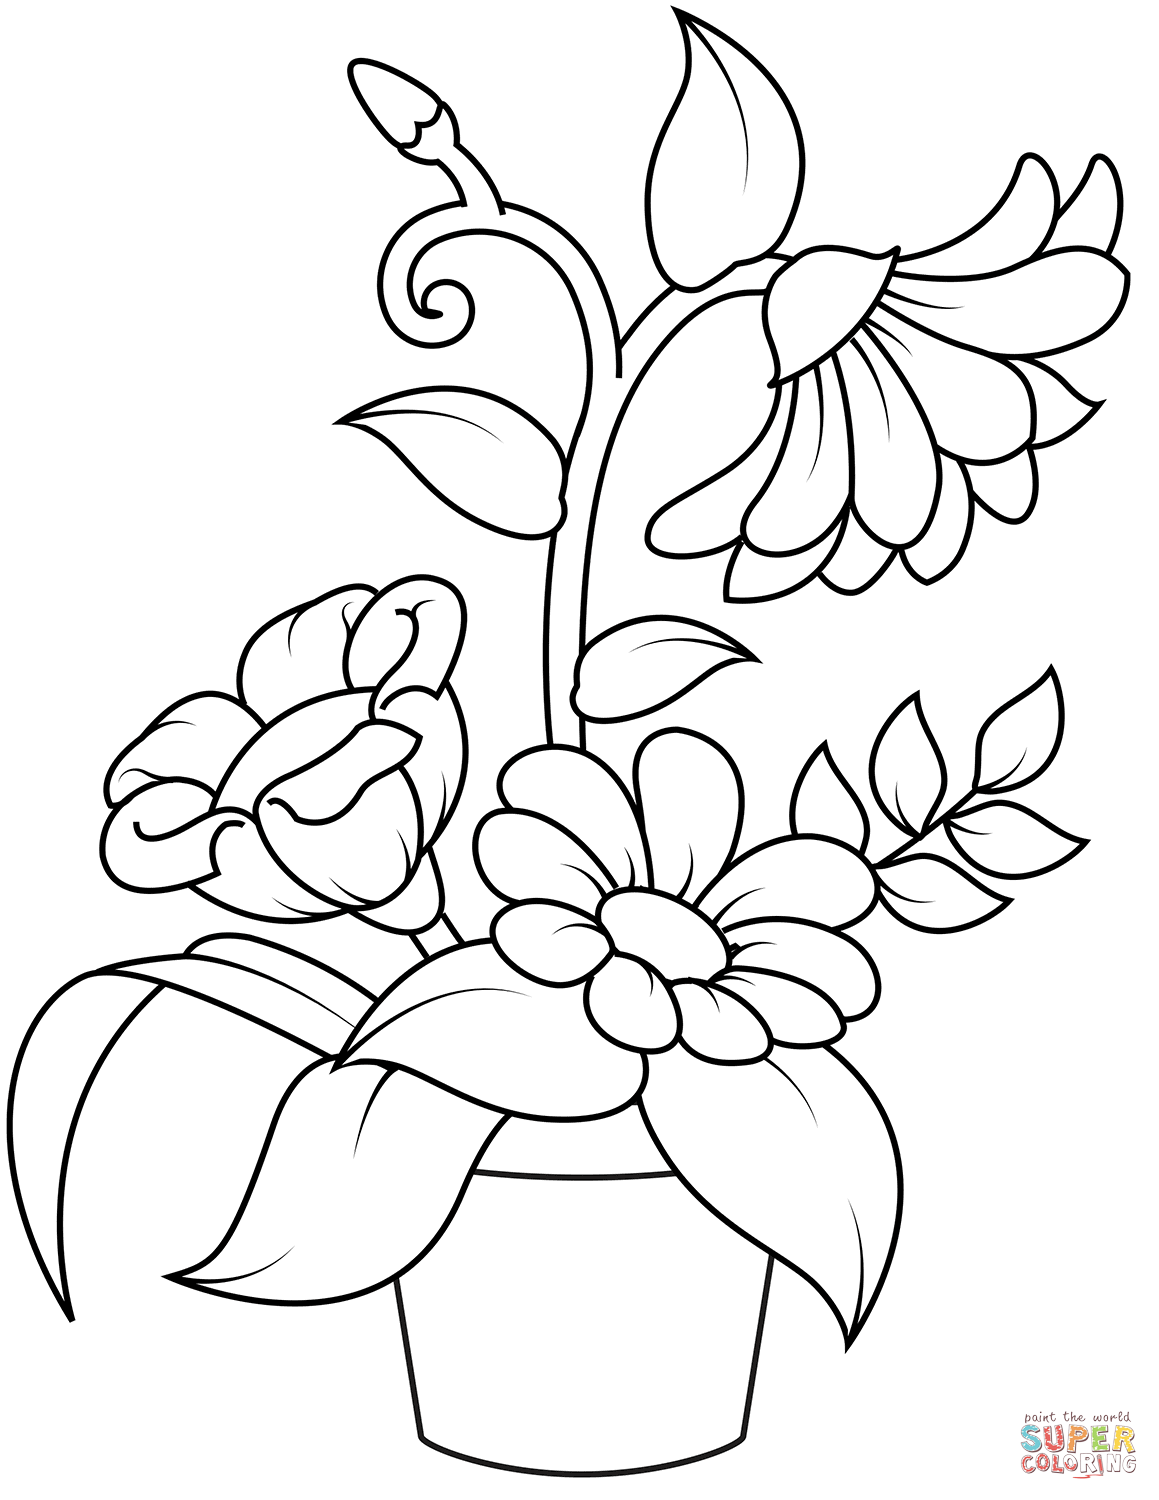 Flowerpot Coloring Page